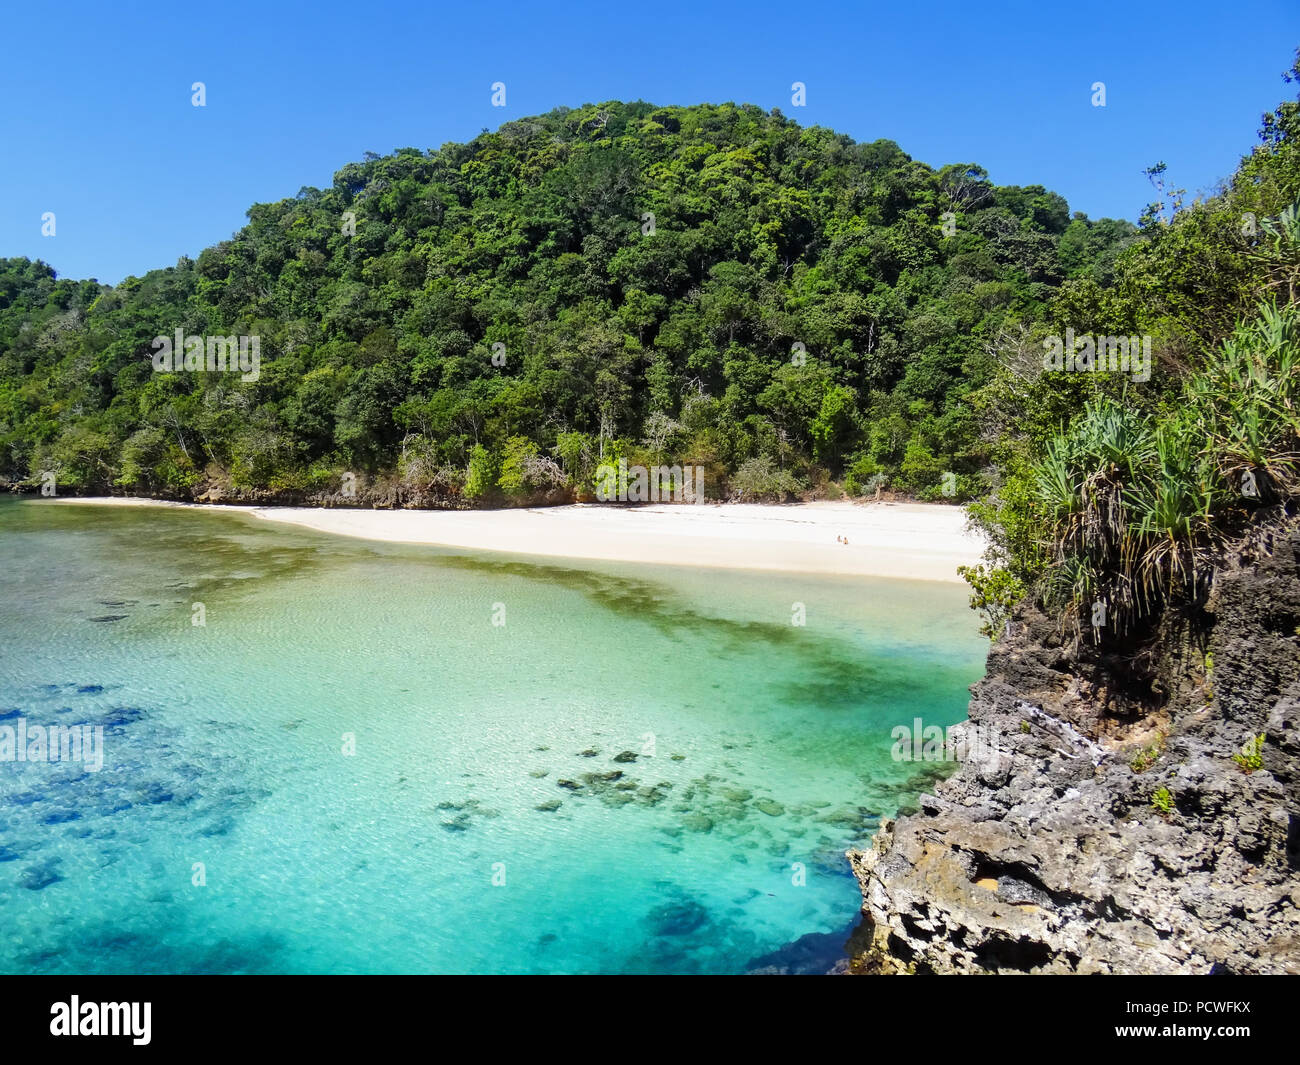 People relax on desert white sand beach after trekking in tropical jungle to Segara Anakan lagoon with clear water. Scenic view of hidden natural pool - Stock Image